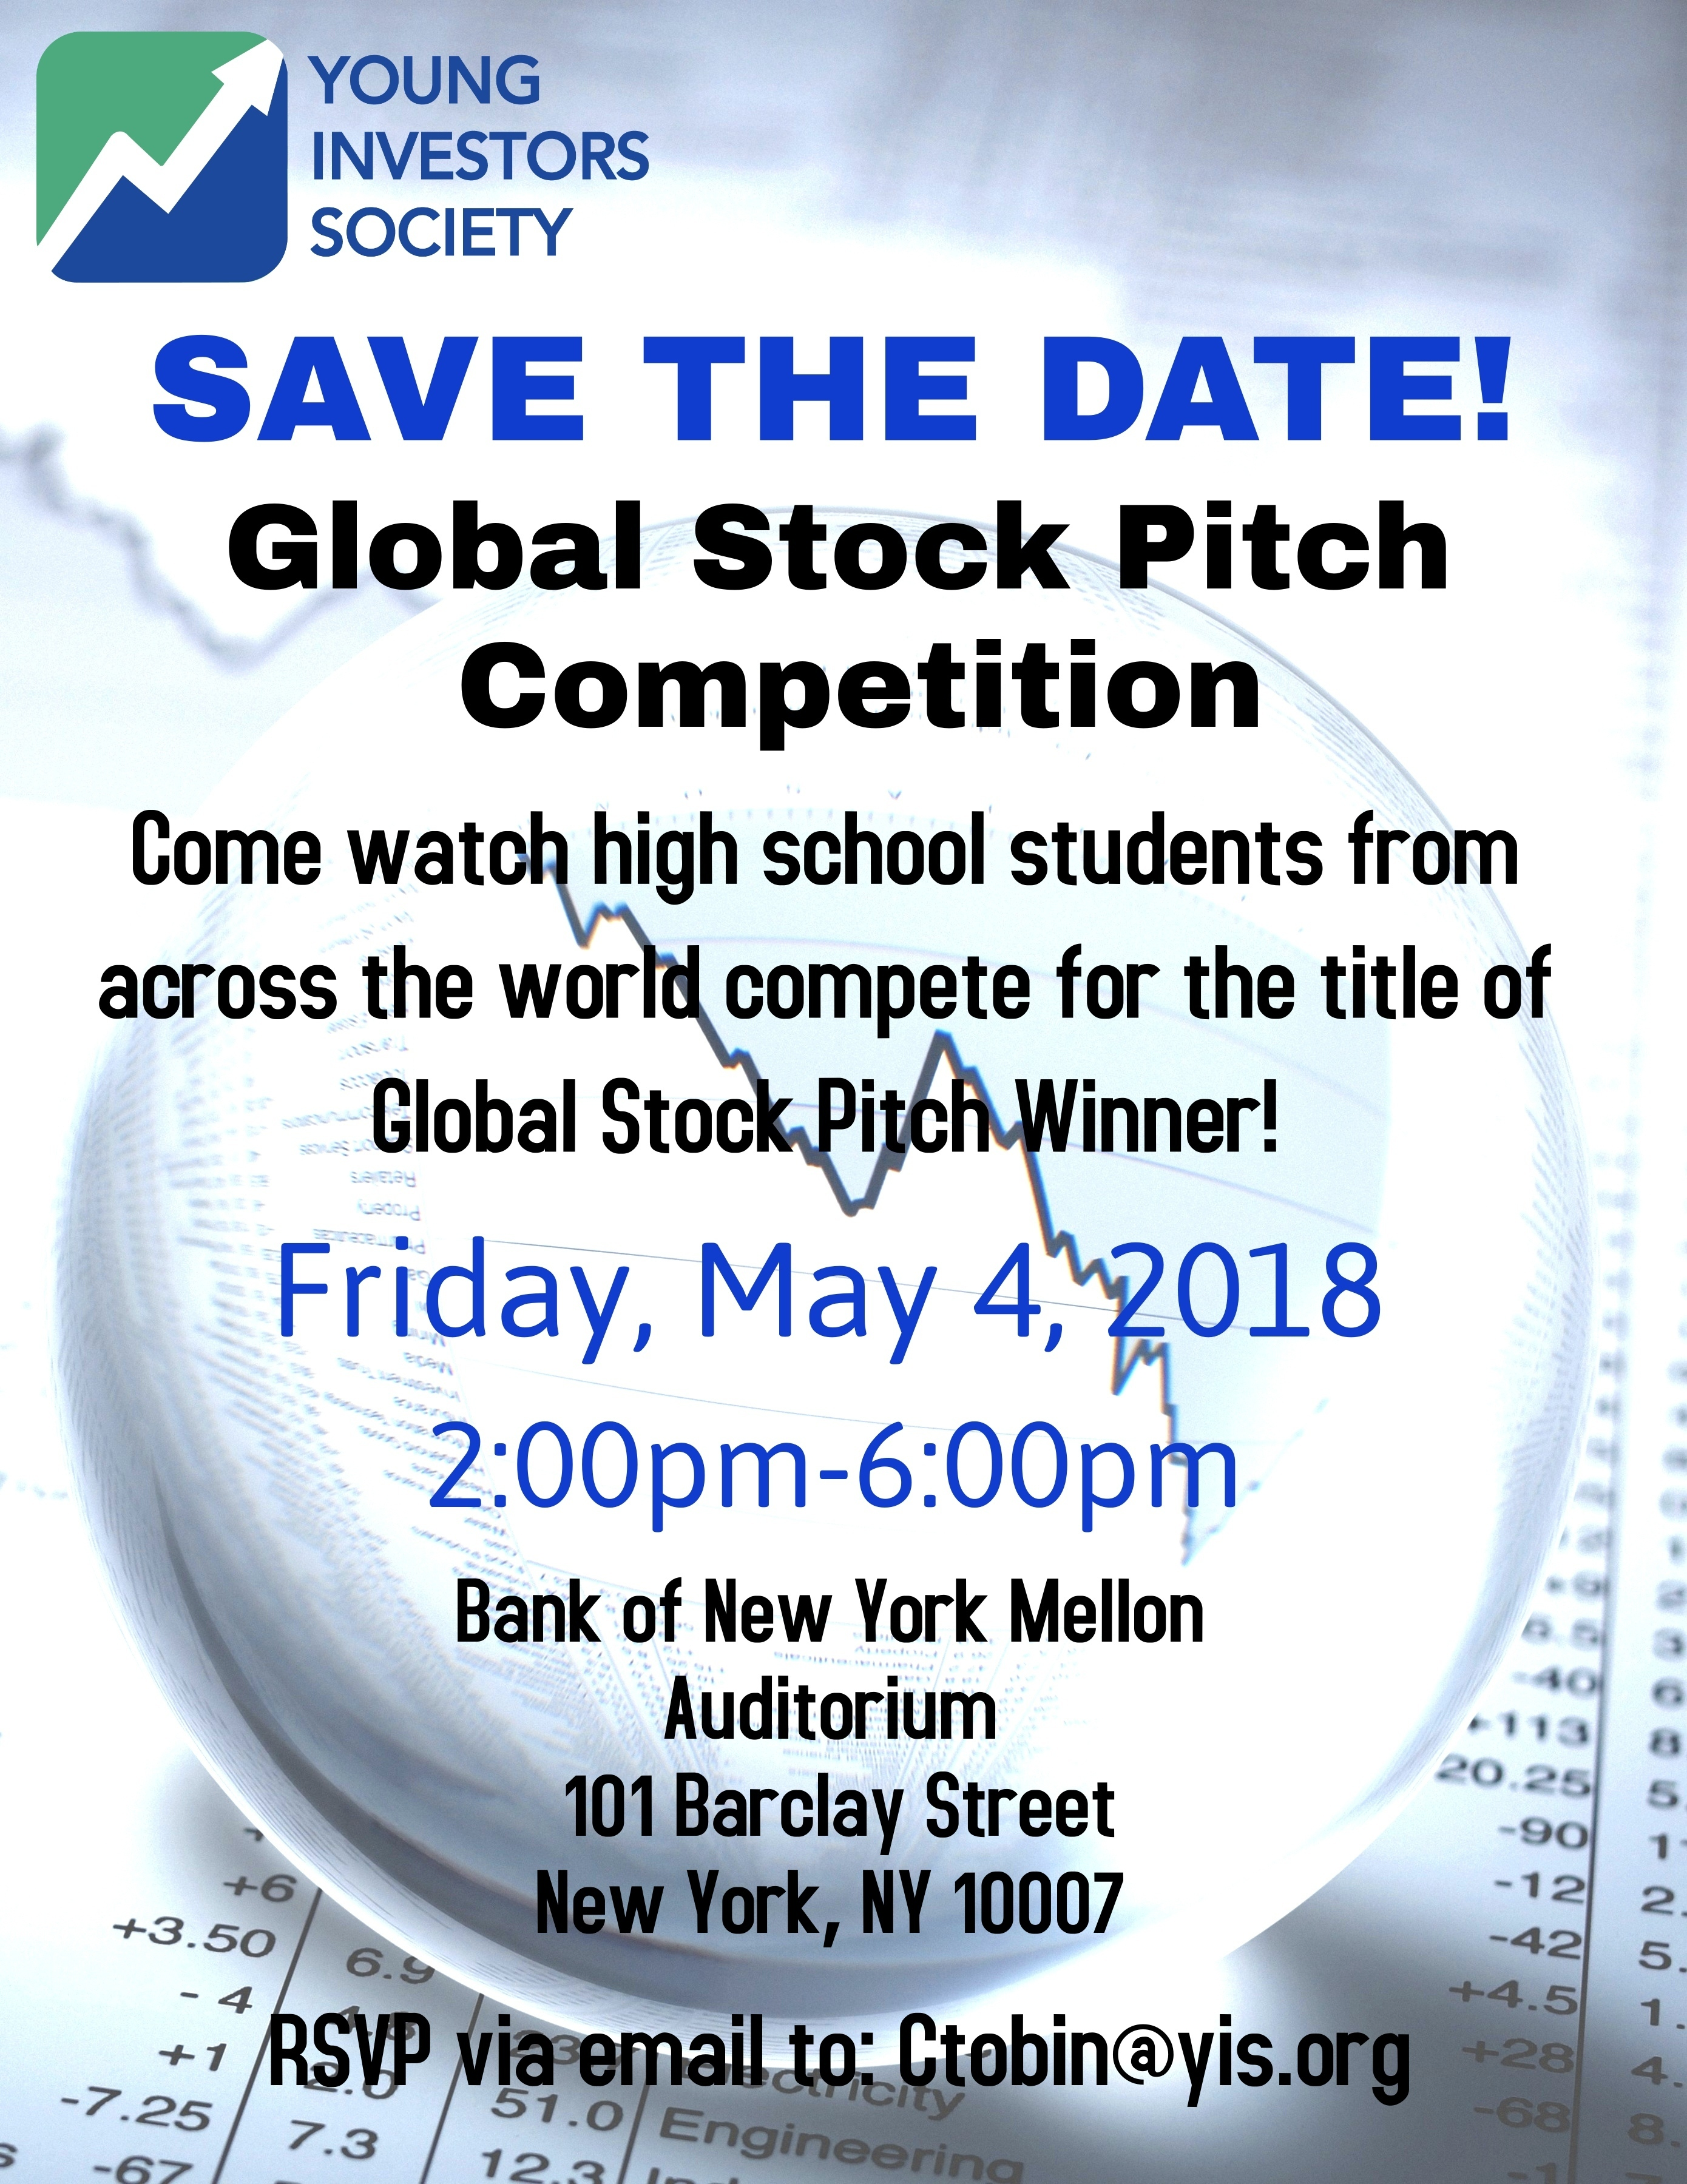 Global Stock Pitch Competition on May 4, 2018!